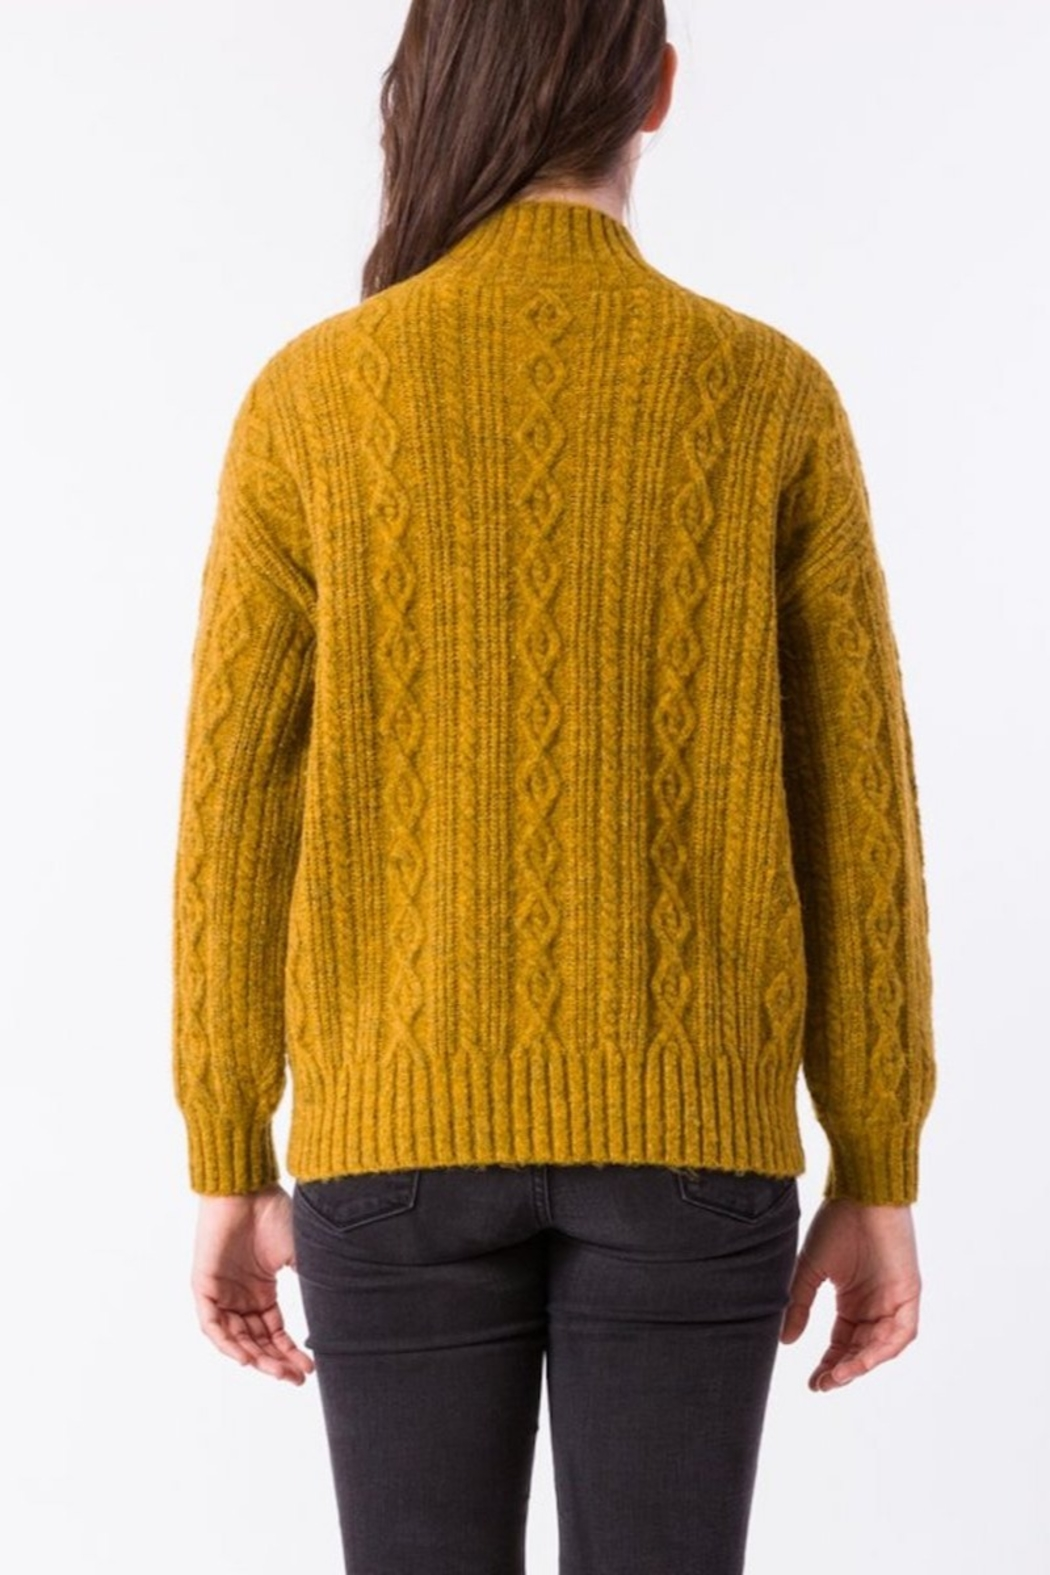 Kerisma Spice Cable-Knit Sweater - Front Full Image